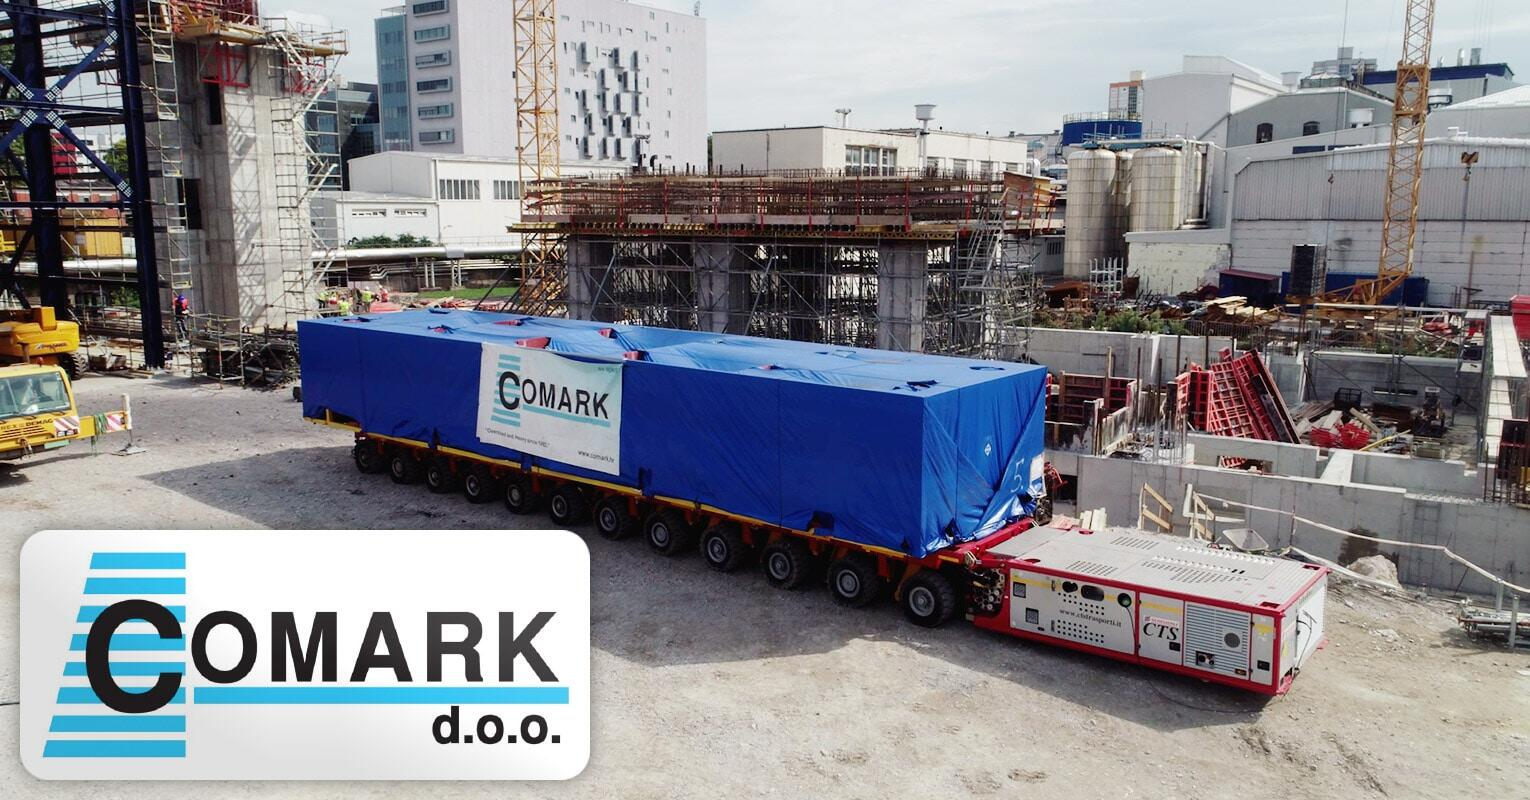 Comark Performed the Transport and Positioning of 8 x 165-ton Modules from Rijeka Port to Site via Comark's Own Depot and Warehouse